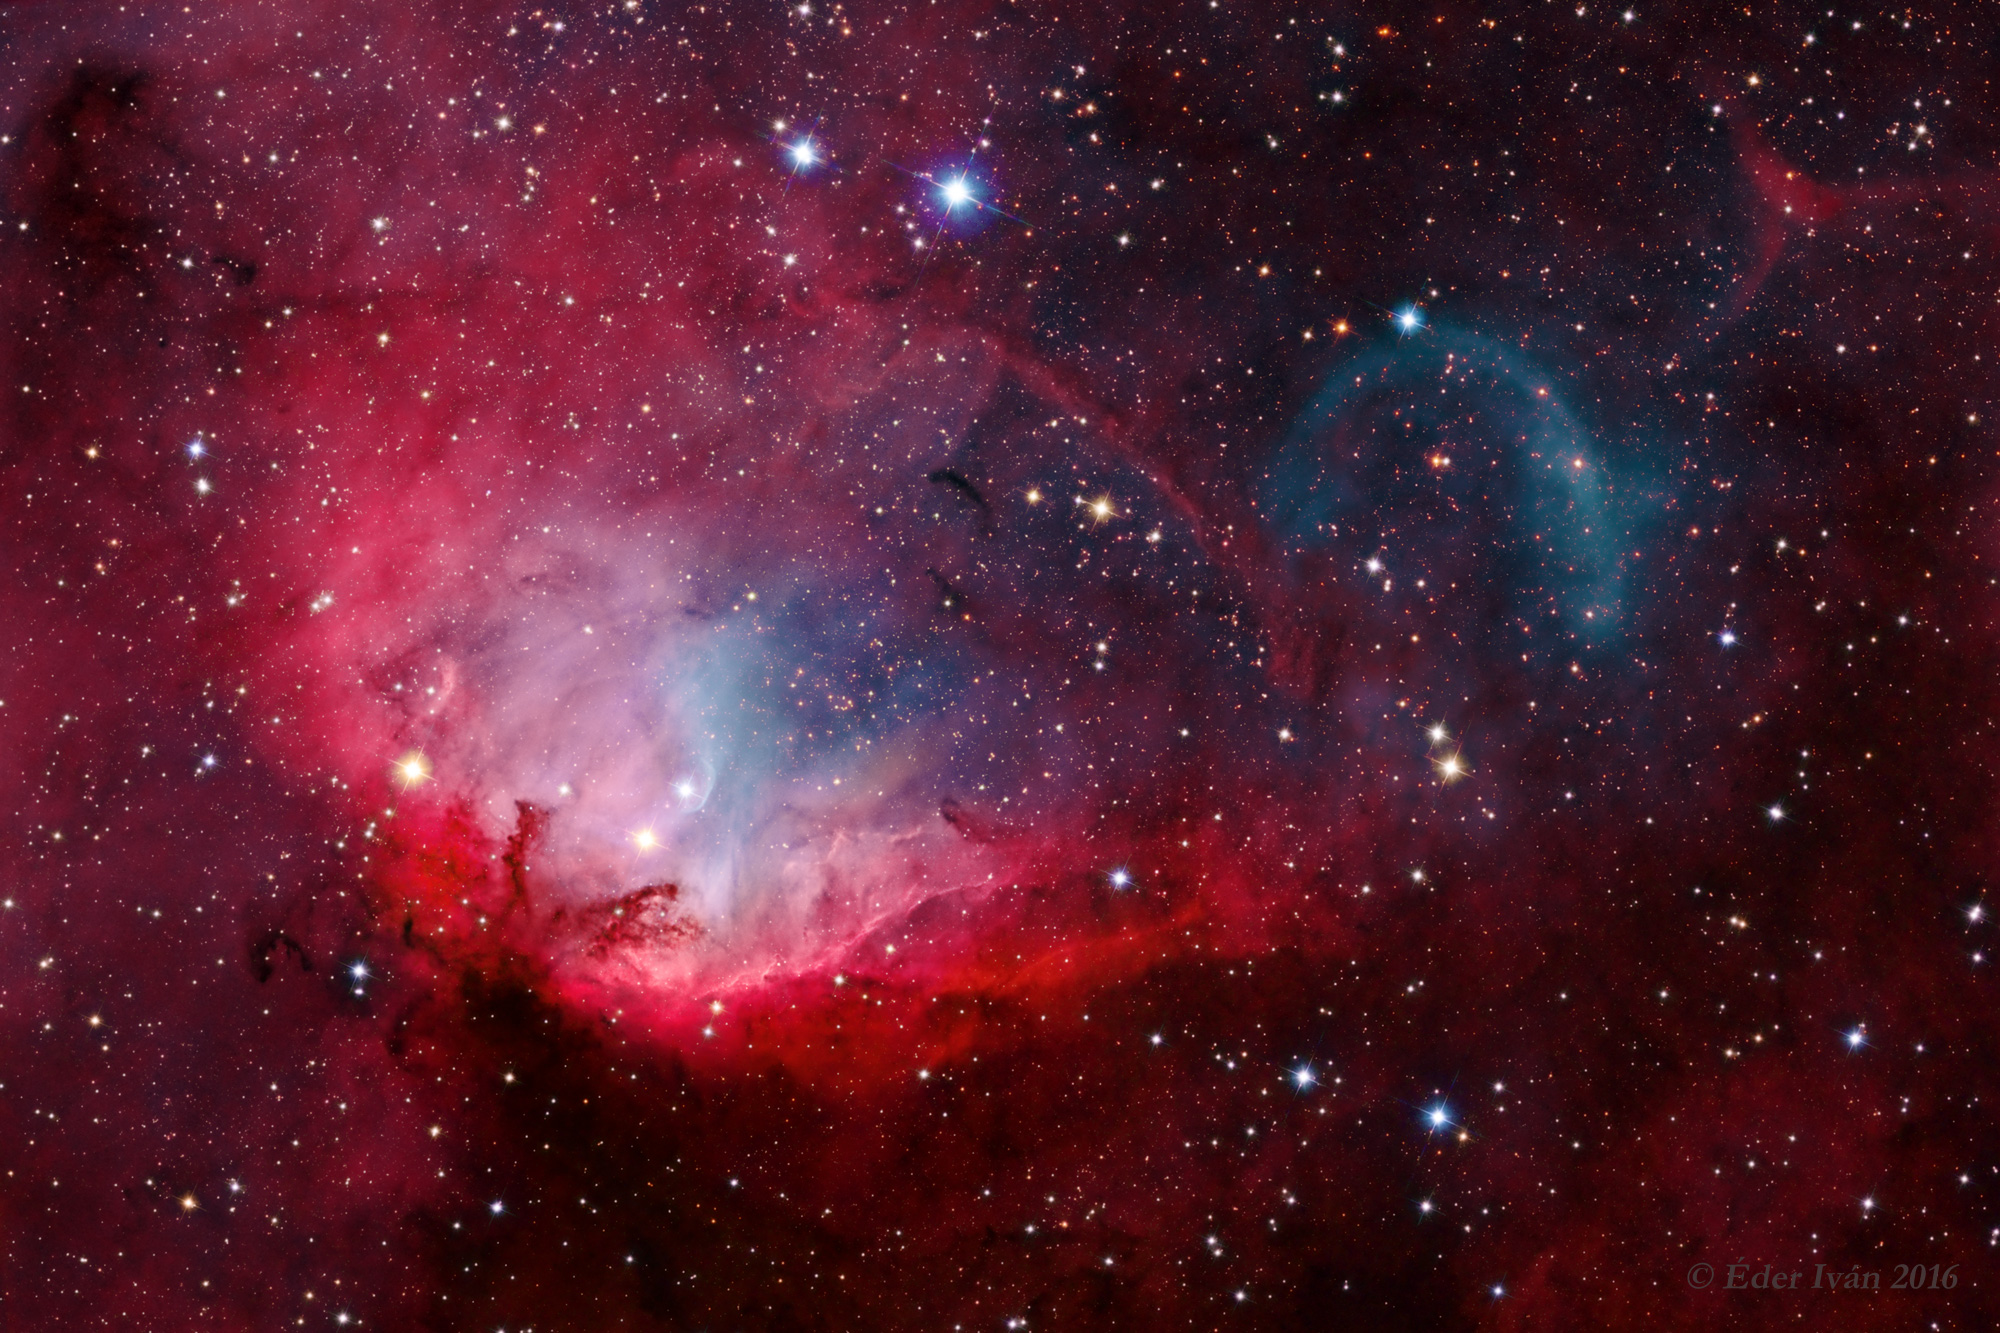 The Tulip and Cygnus X-1